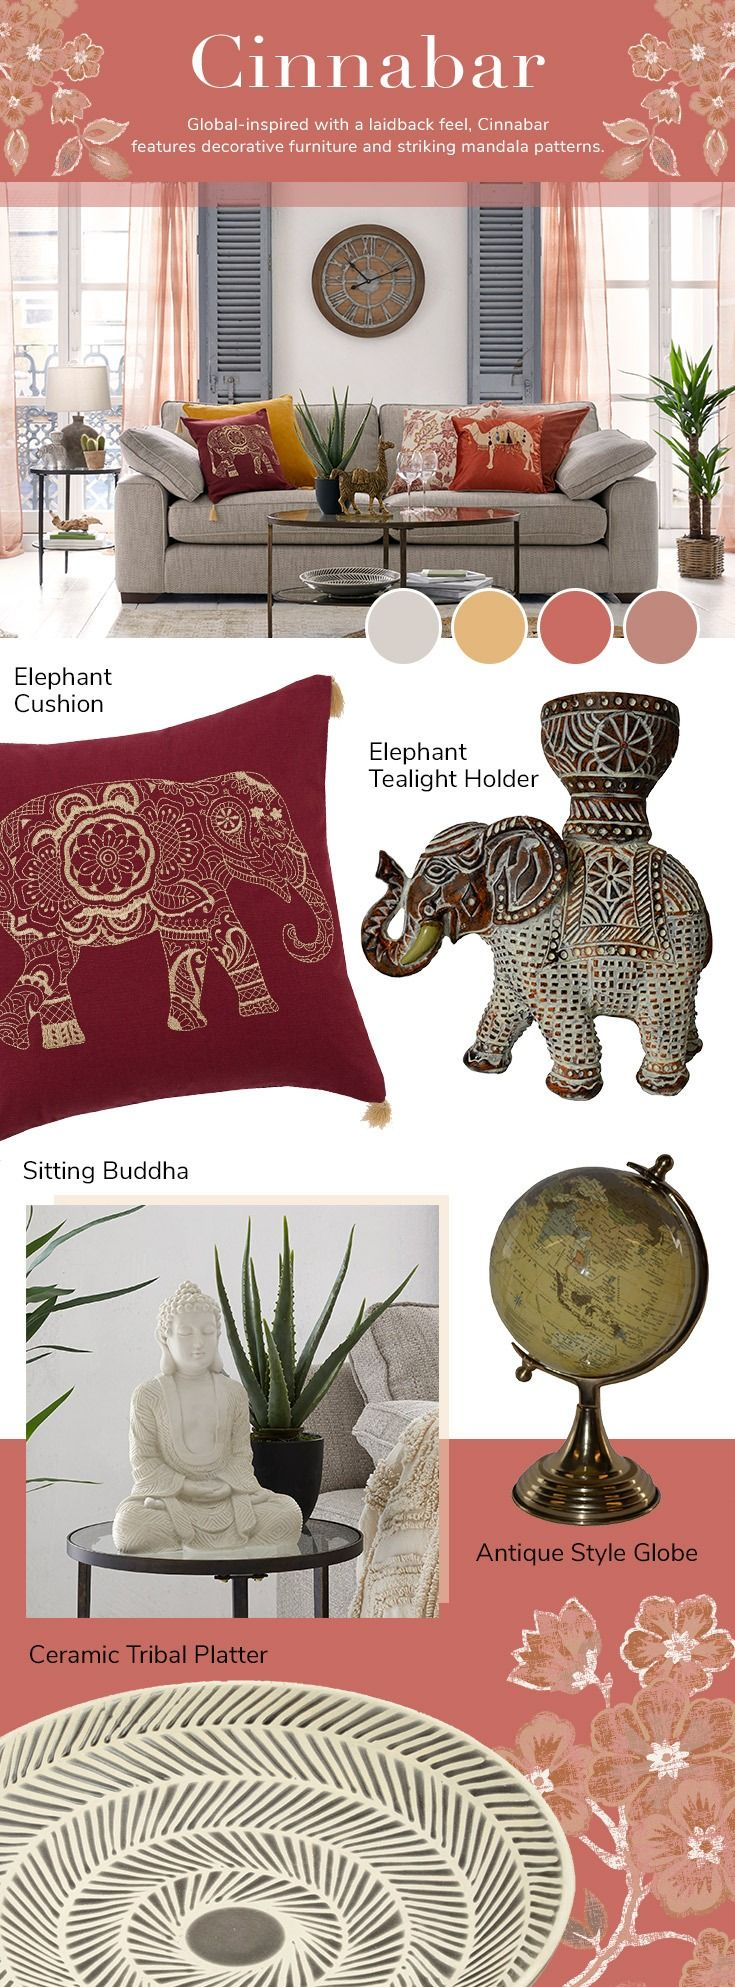 Pin By Trend4homy On Trending Decoration In 2019: Furniture Decor, Home Trends, Moroccan Floor Lamp